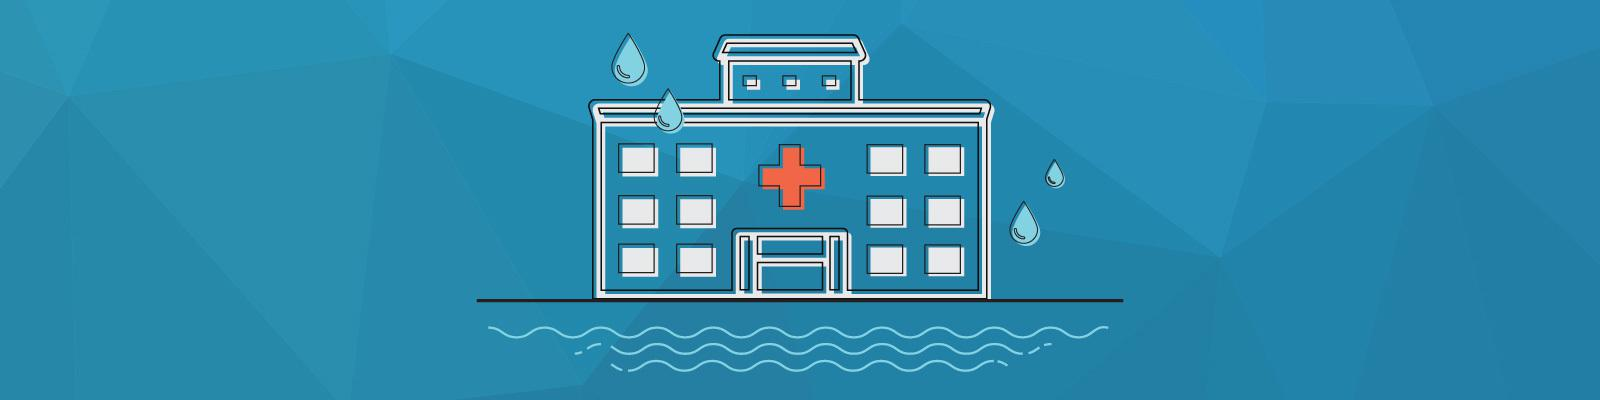 When Flood Strikes, Datto Delivers Disaster Recovery